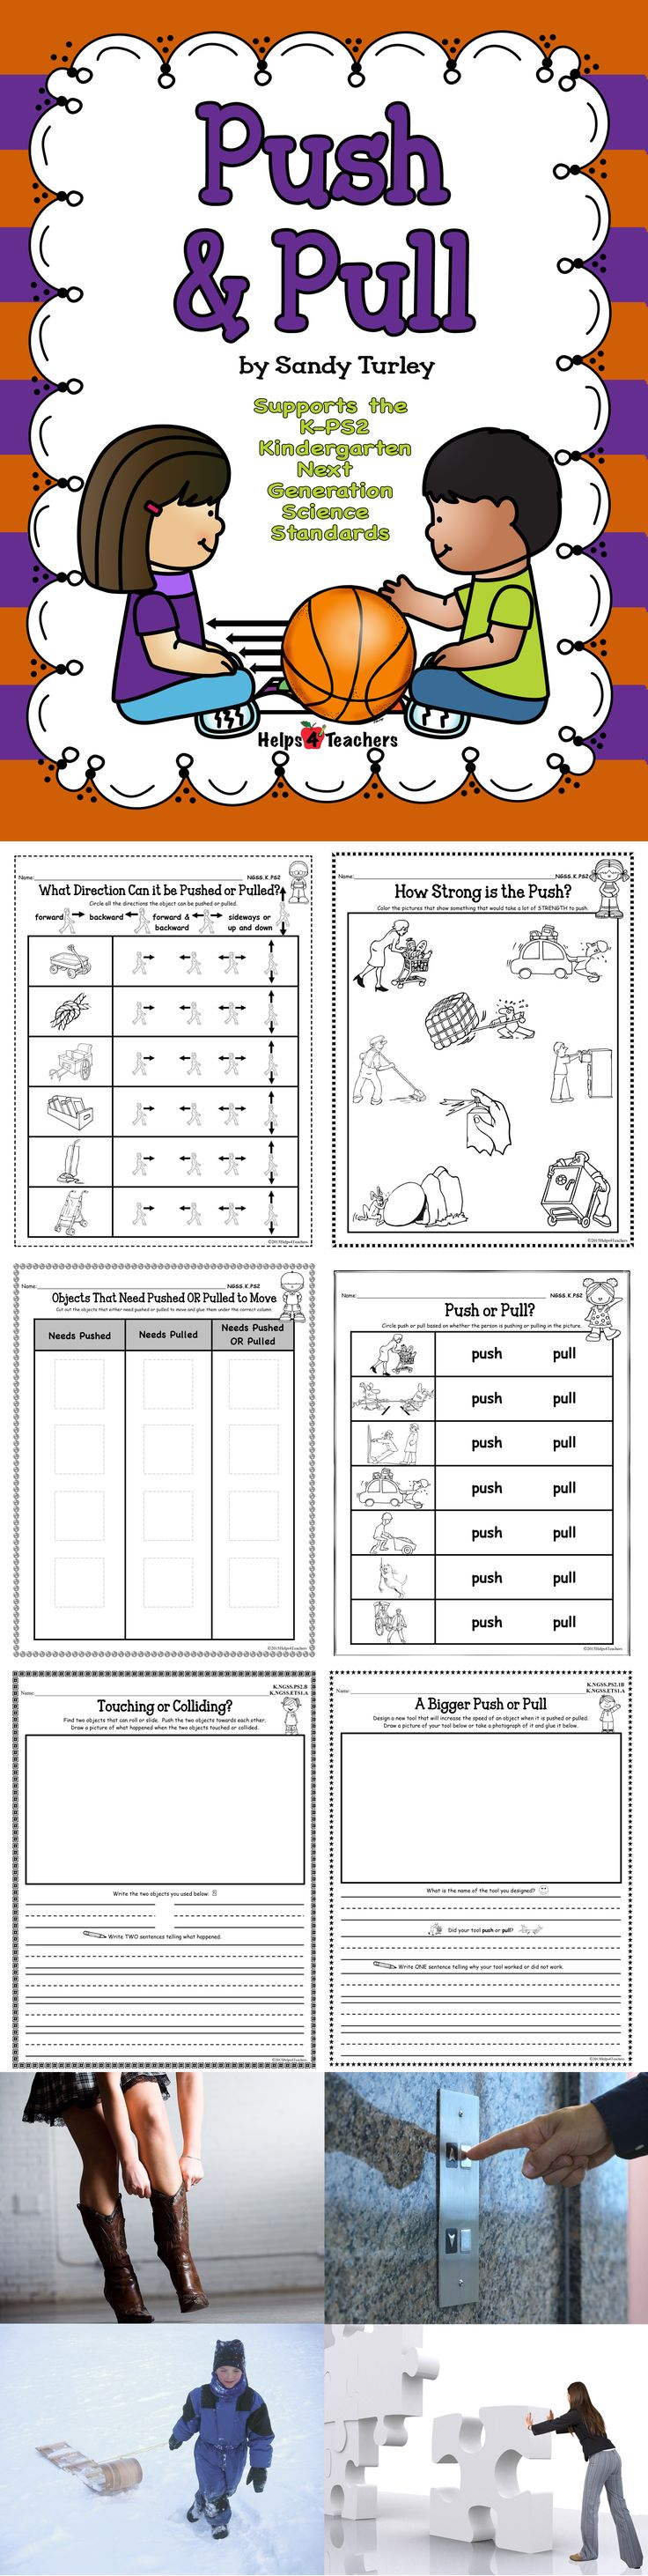 Activity sheets needed for lessons on the following Push or Pull topics: -	Is it a Push or a Pull? -	Strength needed to Push Things -	Strength needed to Pull Things -	Directions Objects Can be Pushed or Pulled - Objects that Need to be Pushed or Pulled to Move -plus large and small colored photographs to enhance your lesson.